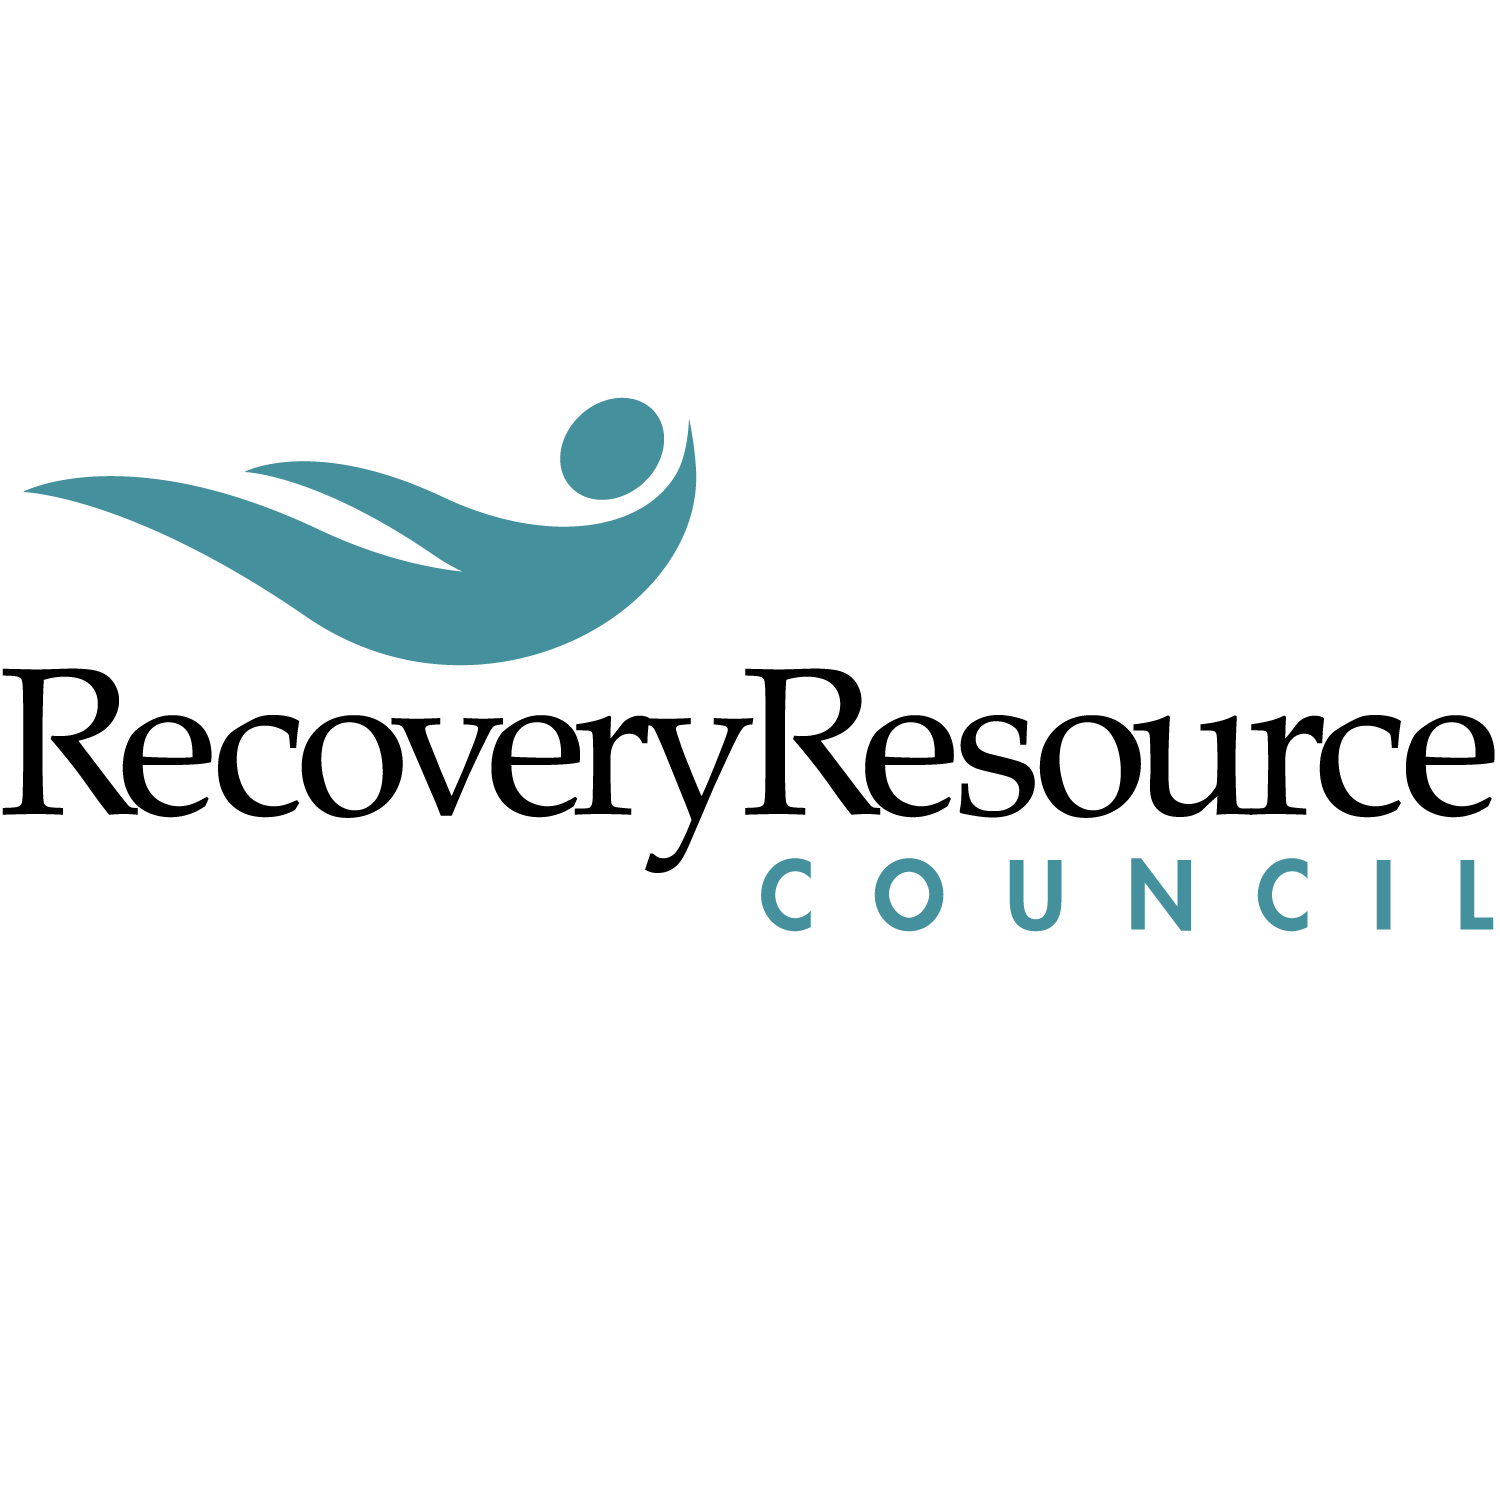 Recovery Resource Council provides management and behavioral health services to those seeking help with substance abuse and mental health issues to veterans for free through counseling.   Emotional, Substance Abuse, Mental Health, Veterans Services